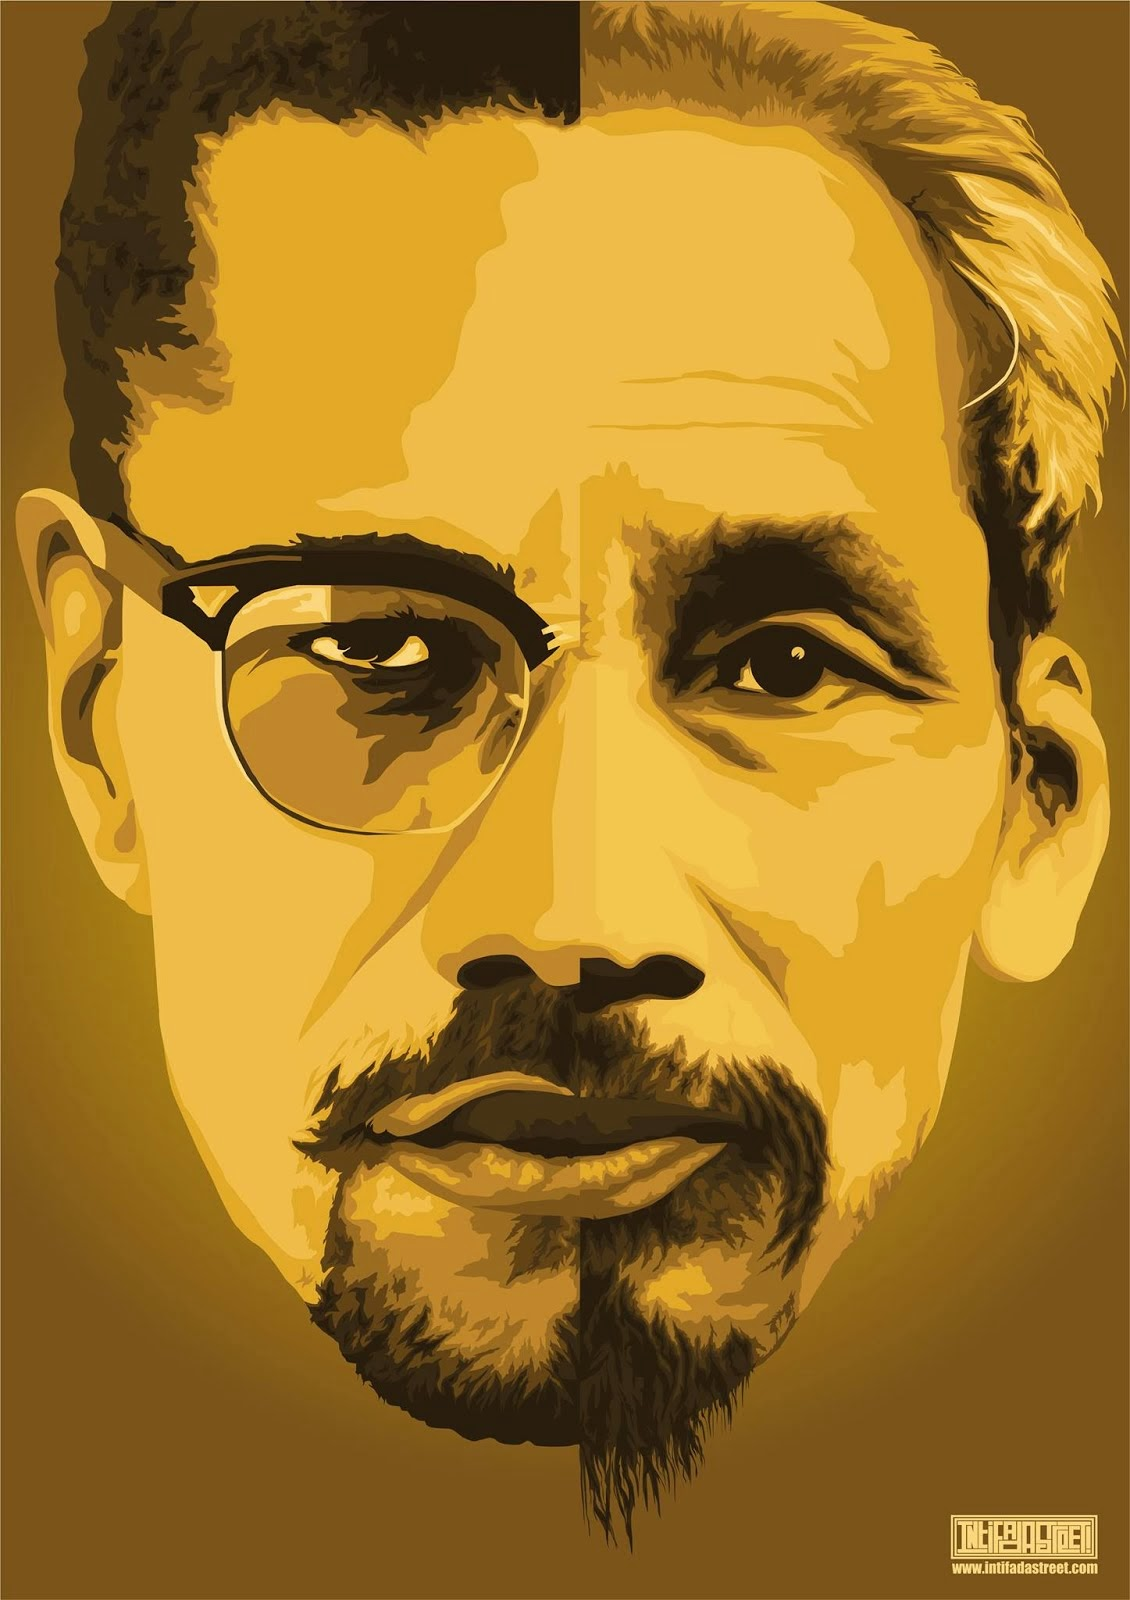 public event: CELEBRATING MALCOLM X & HO CHI MINH's BIRTHDAY, CELEBRATING AFRICAN-ASIAN UNITY